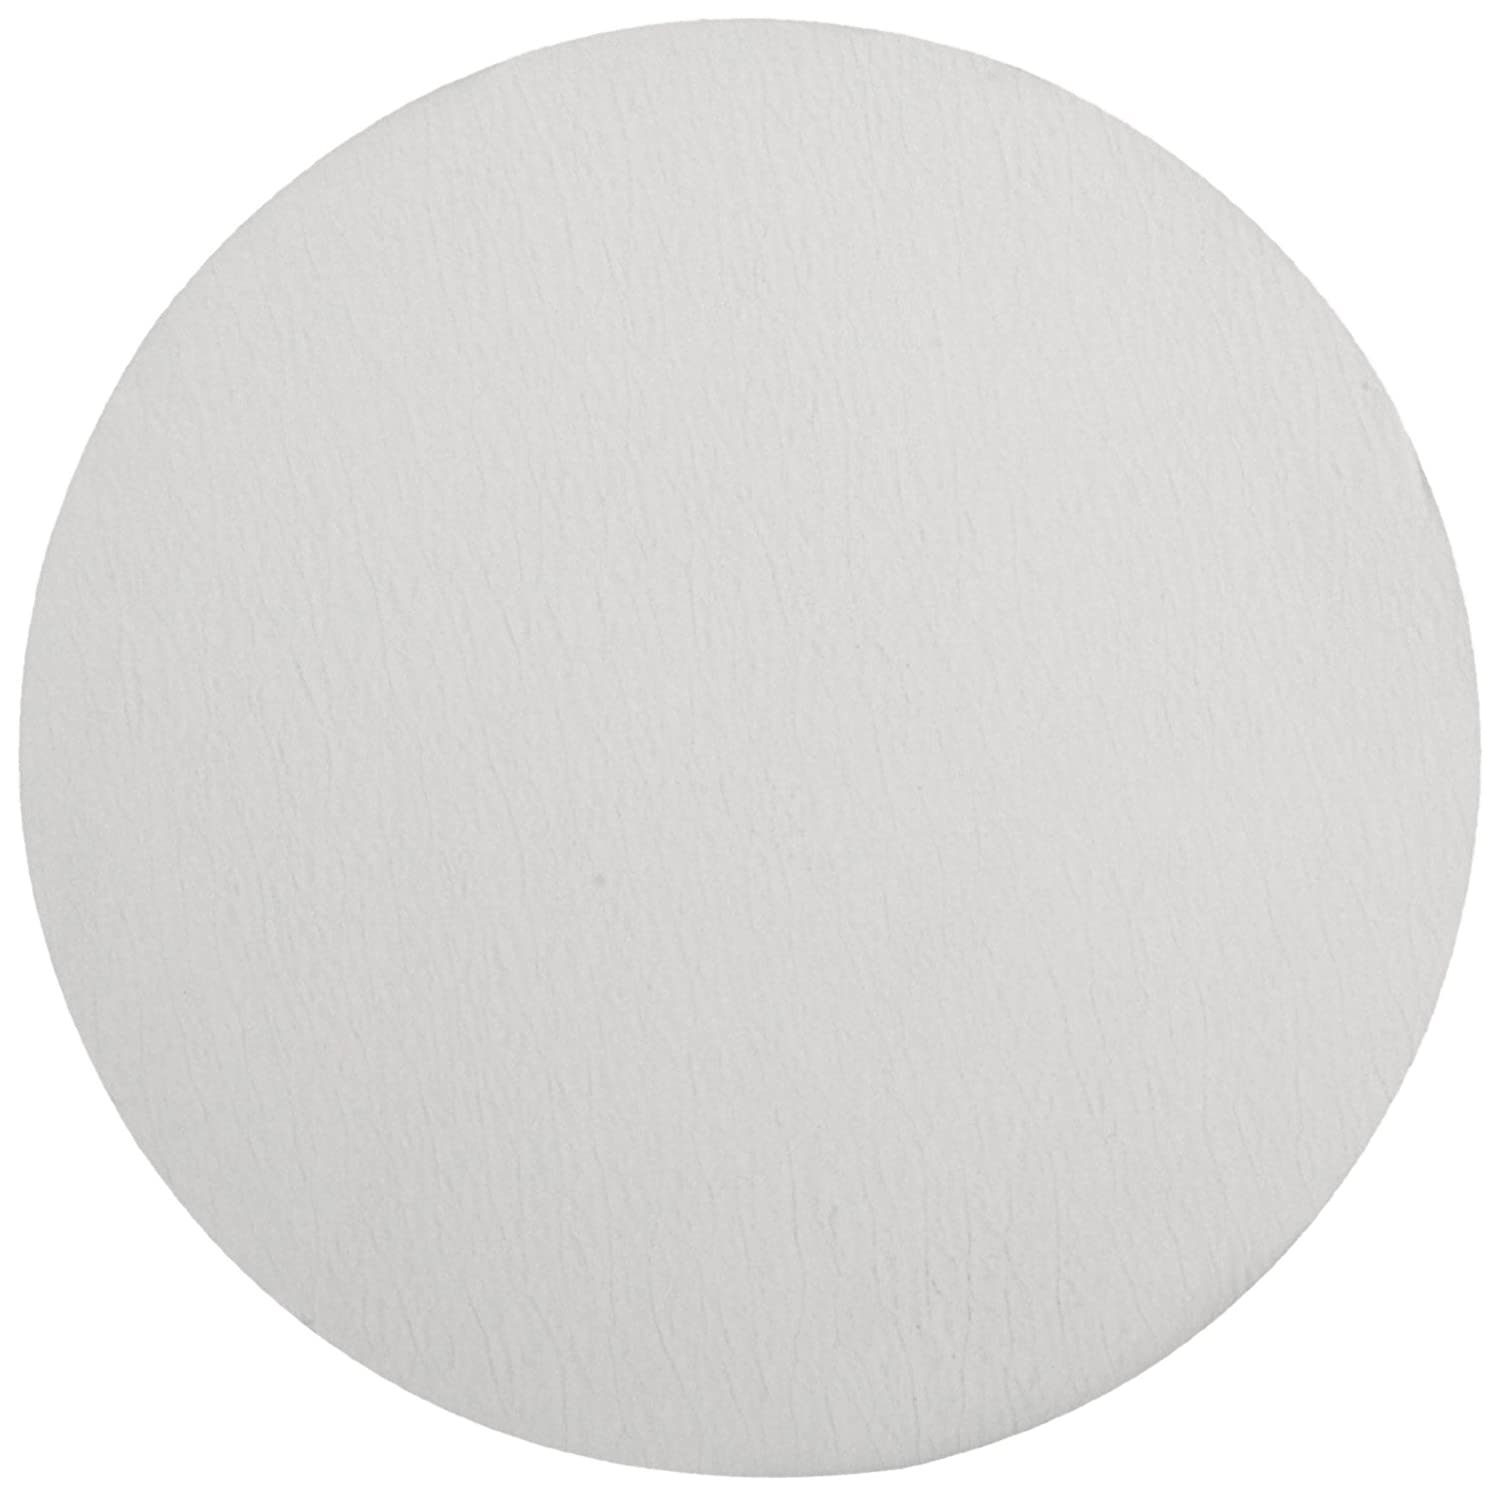 11cm Diameter Grade 237 3 Micron Ahlstrom 2370-1100 Qualitative Filter Paper Pack of 50